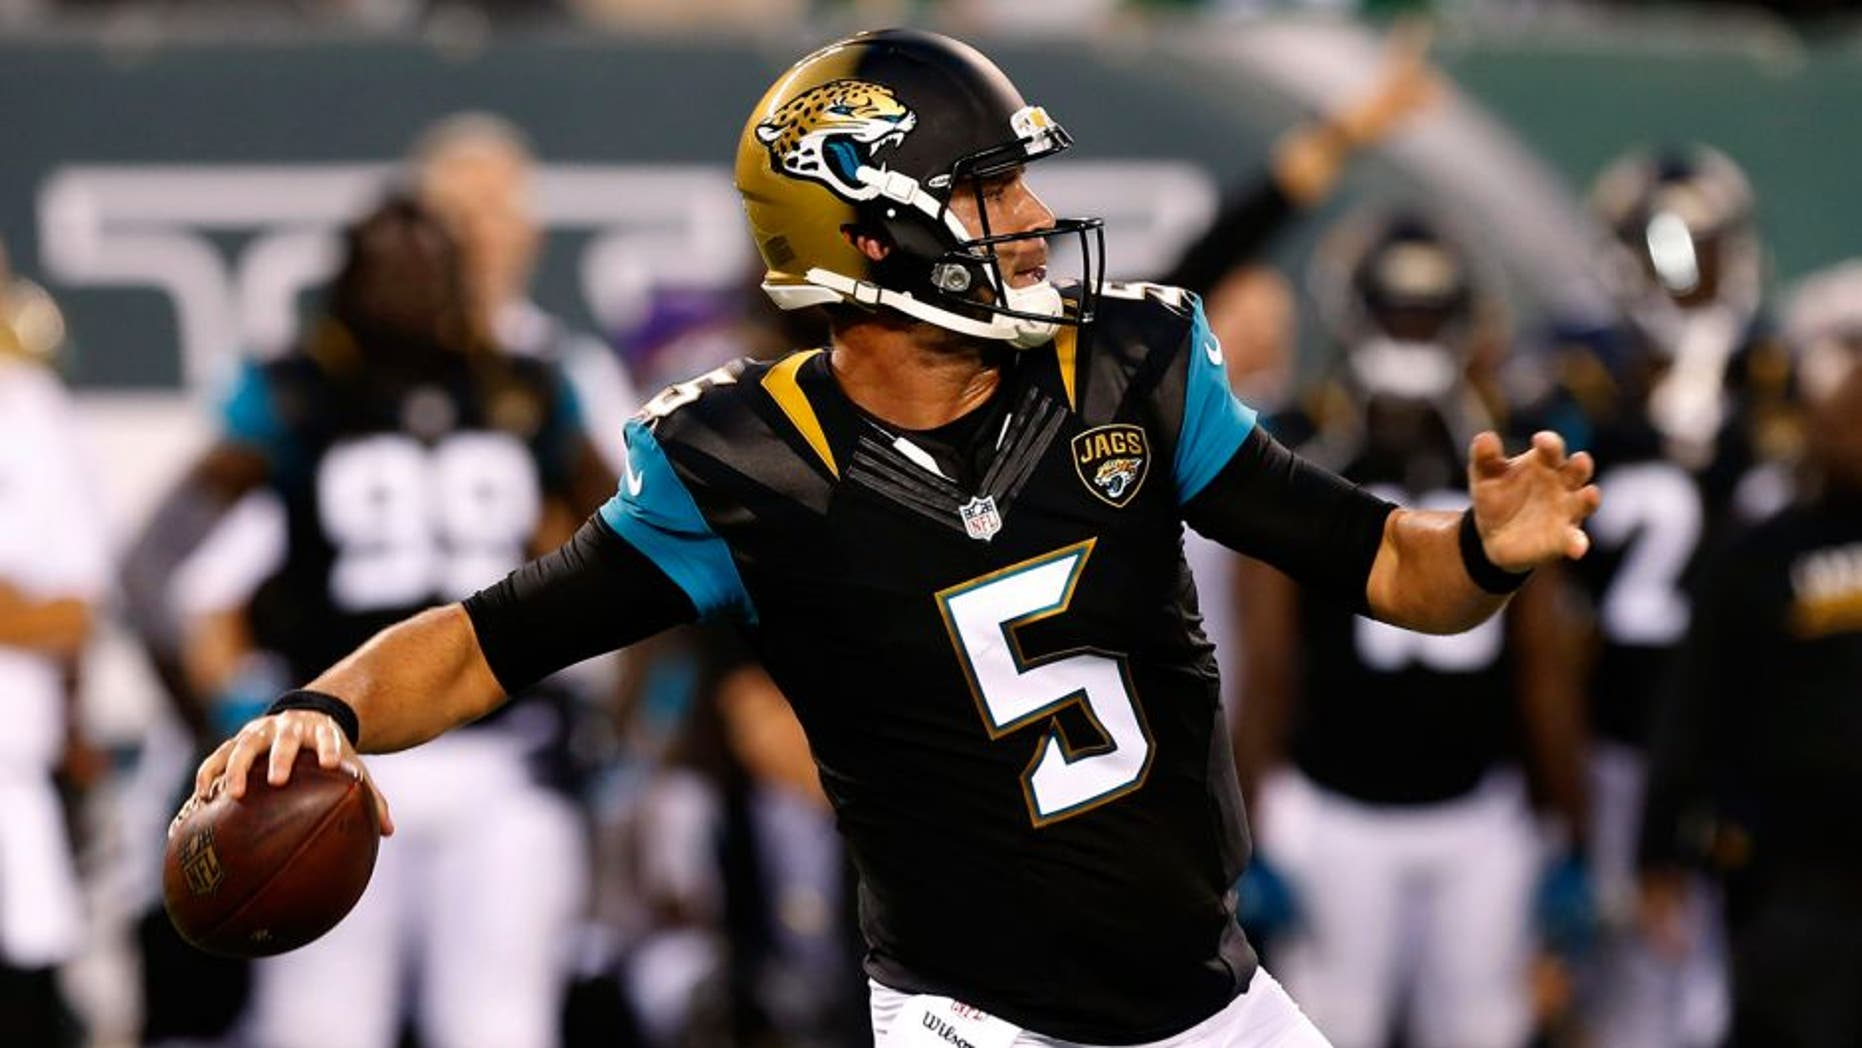 Aug 11, 2016; East Rutherford, NJ, USA; Jacksonville Jaguars quarterback Blake Bortles (5) drops back to pass against the New York Jets during first half at MetLife Stadium. Mandatory Credit: Noah K. Murray-USA TODAY Sports